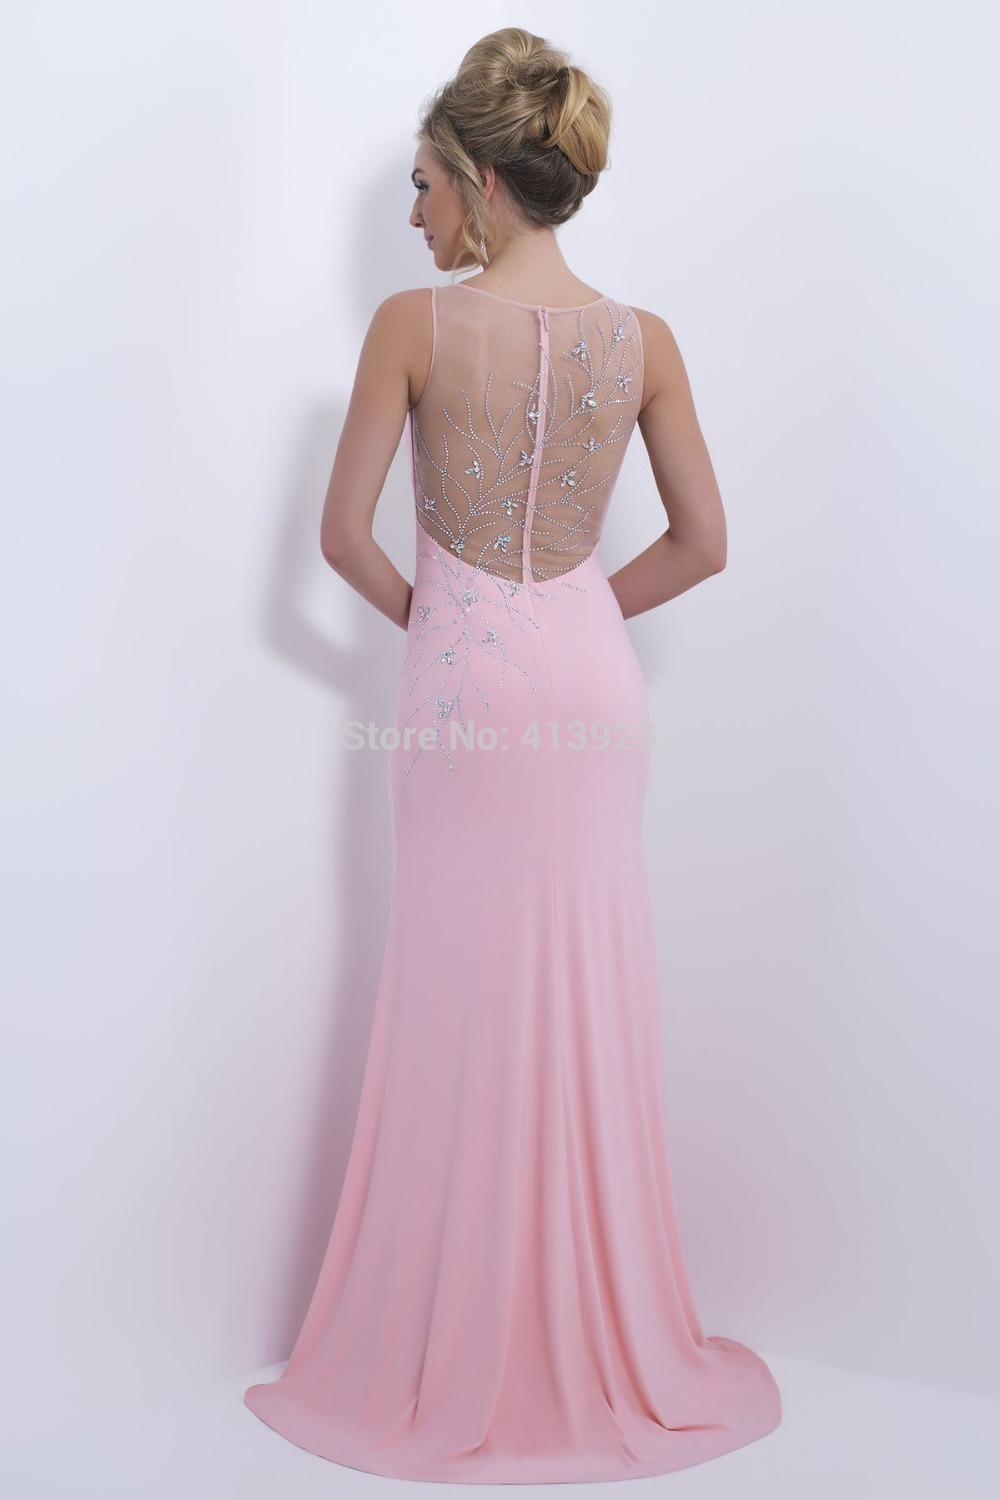 Aliexpress.com : Buy Free Shipping Appliques Scoop Neck Backless 2014 New Arrival Special Occasion Dresses Long Elegant Prom Dresses Vestido De Renda from Reliable dresses dress up suppliers on Chaozhou City Xin Aojia dress Factory